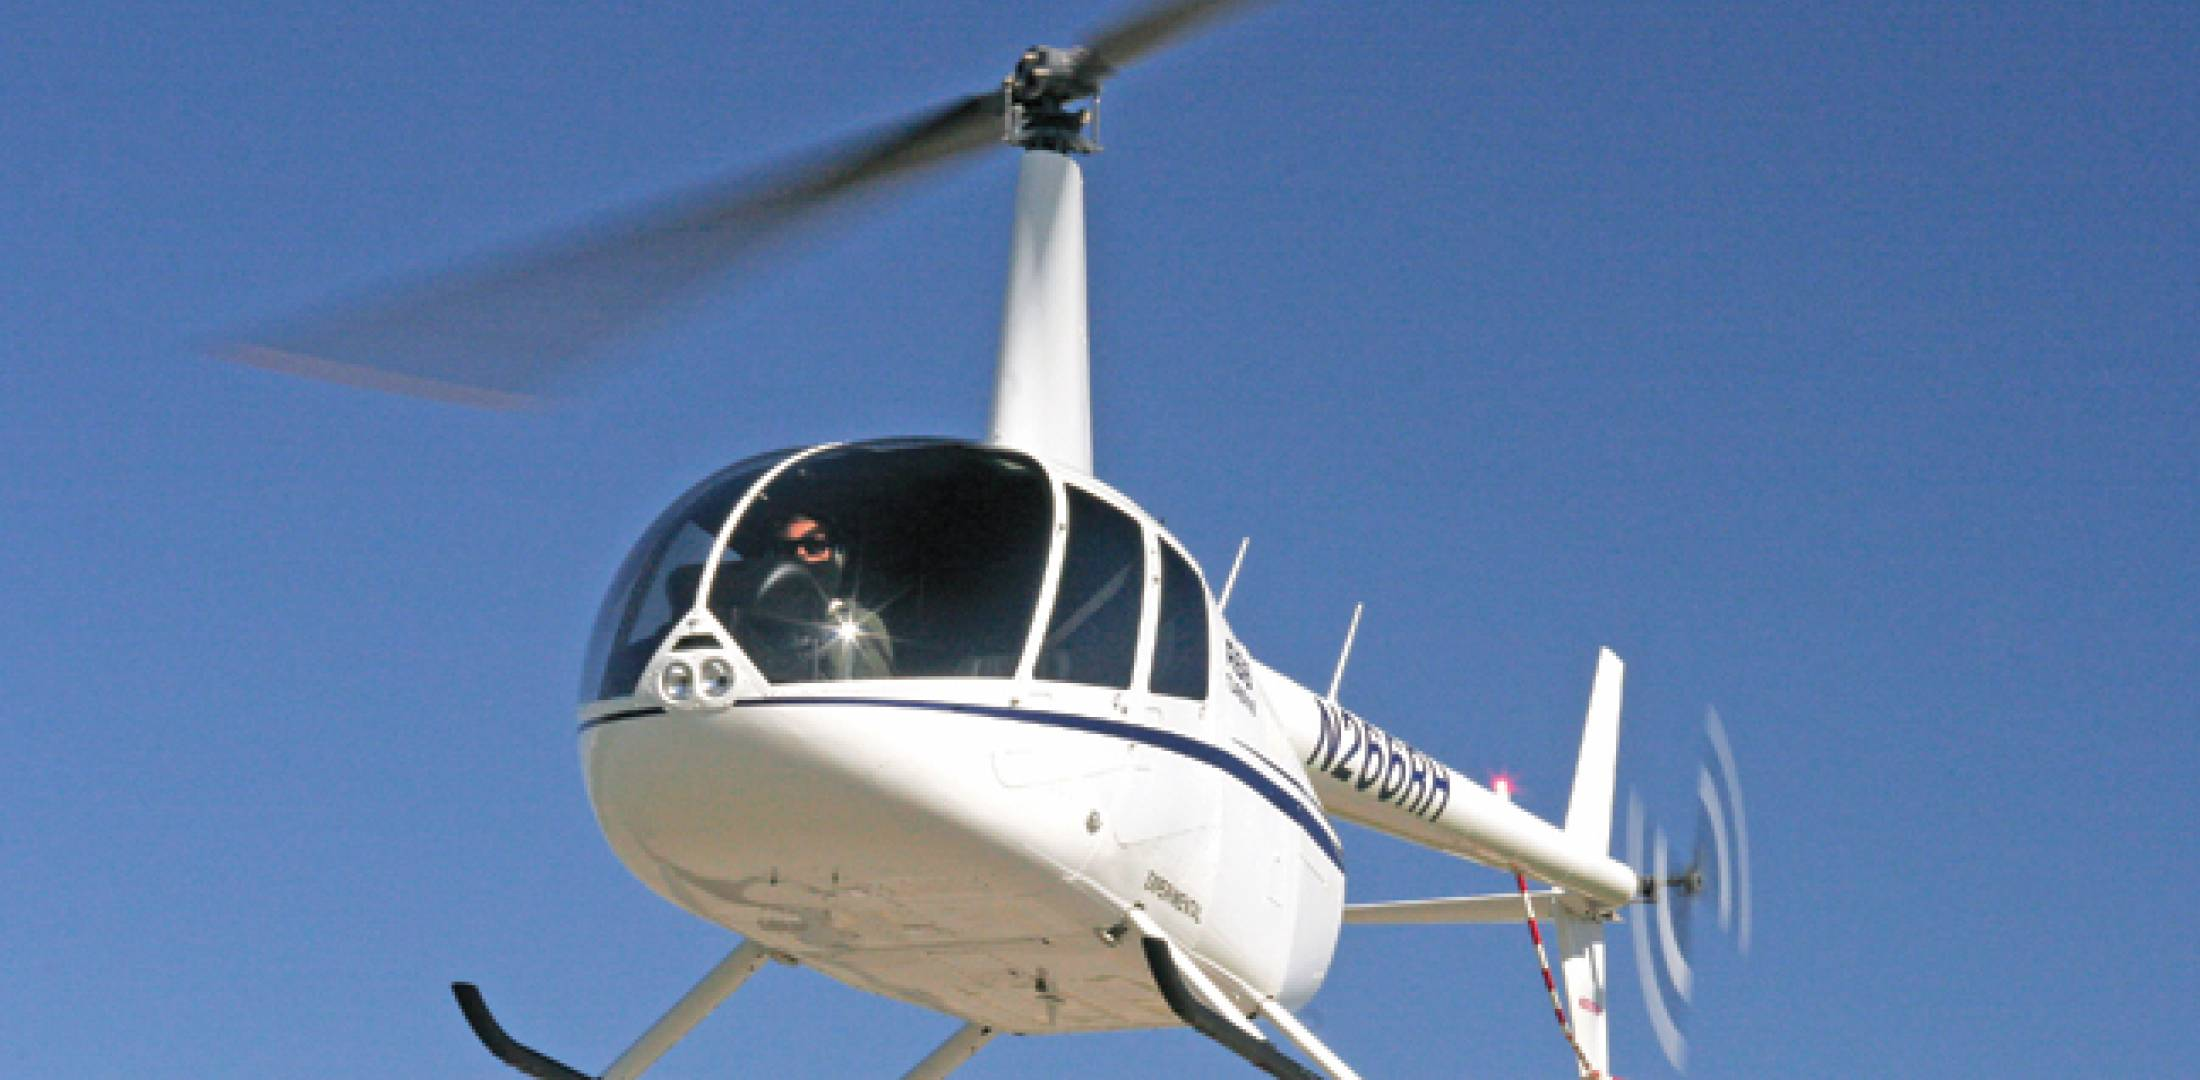 For Robinson Helicopters, the Focus Is on the Fundamentals | News